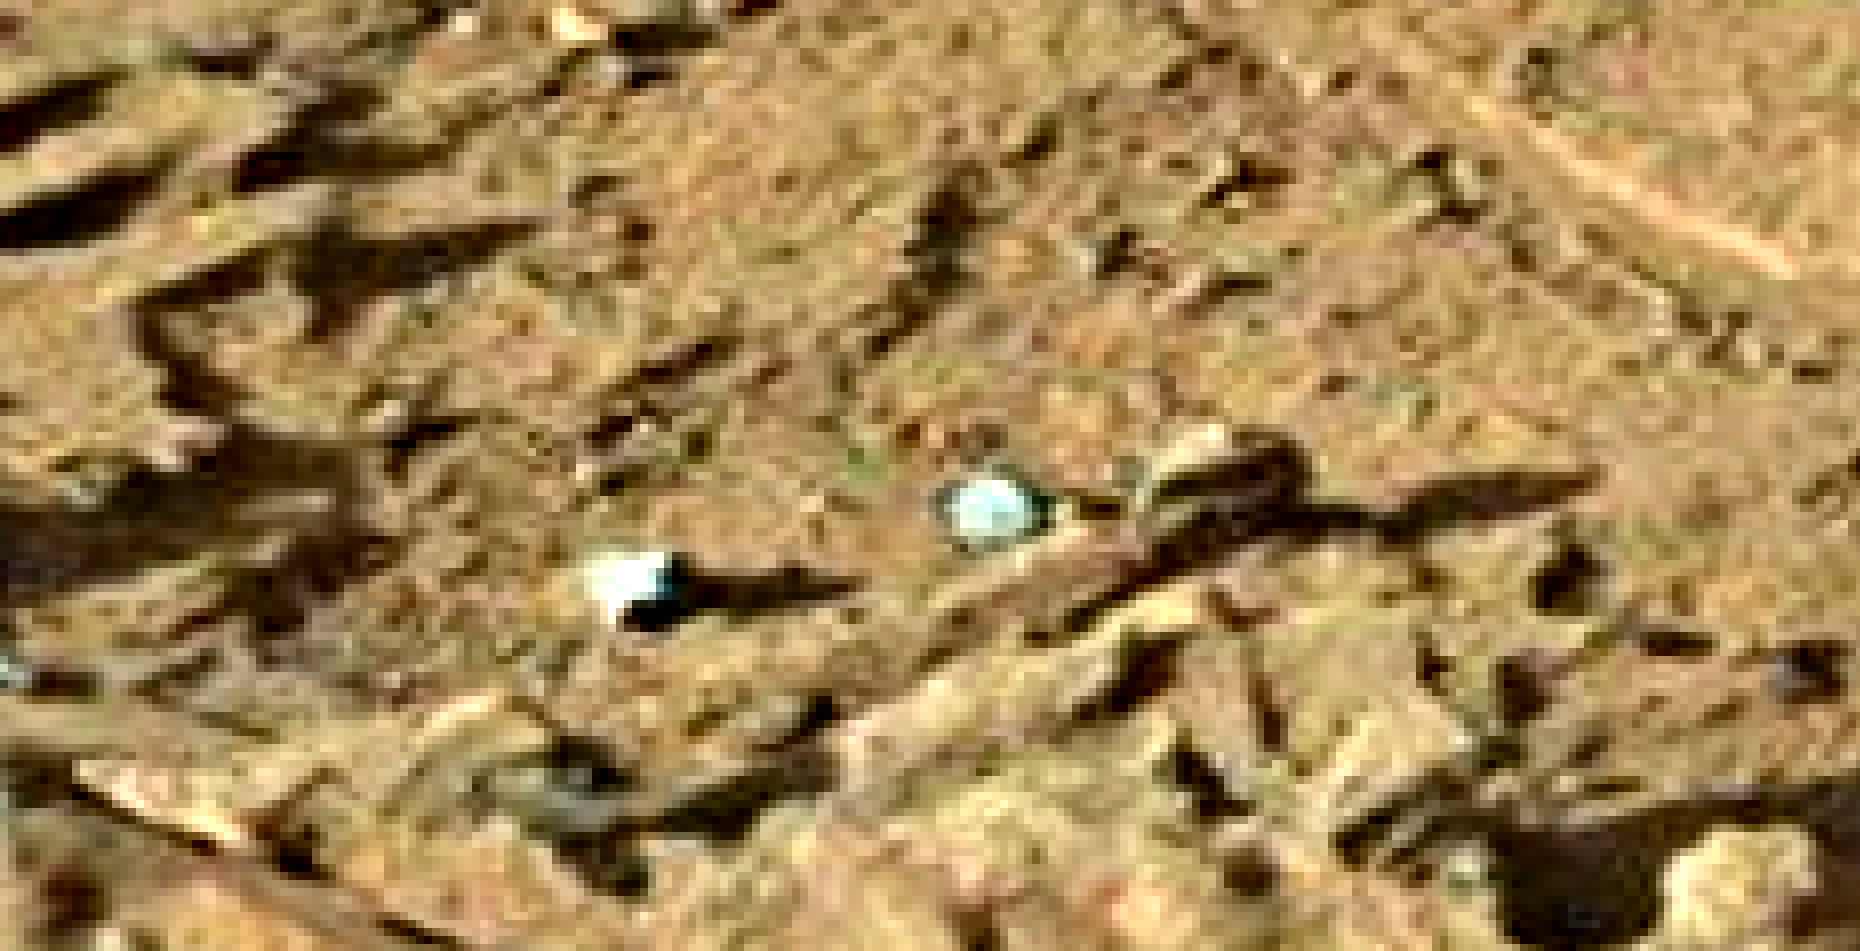 mars sol 1302 anomaly-artifacts 8a was life on mars